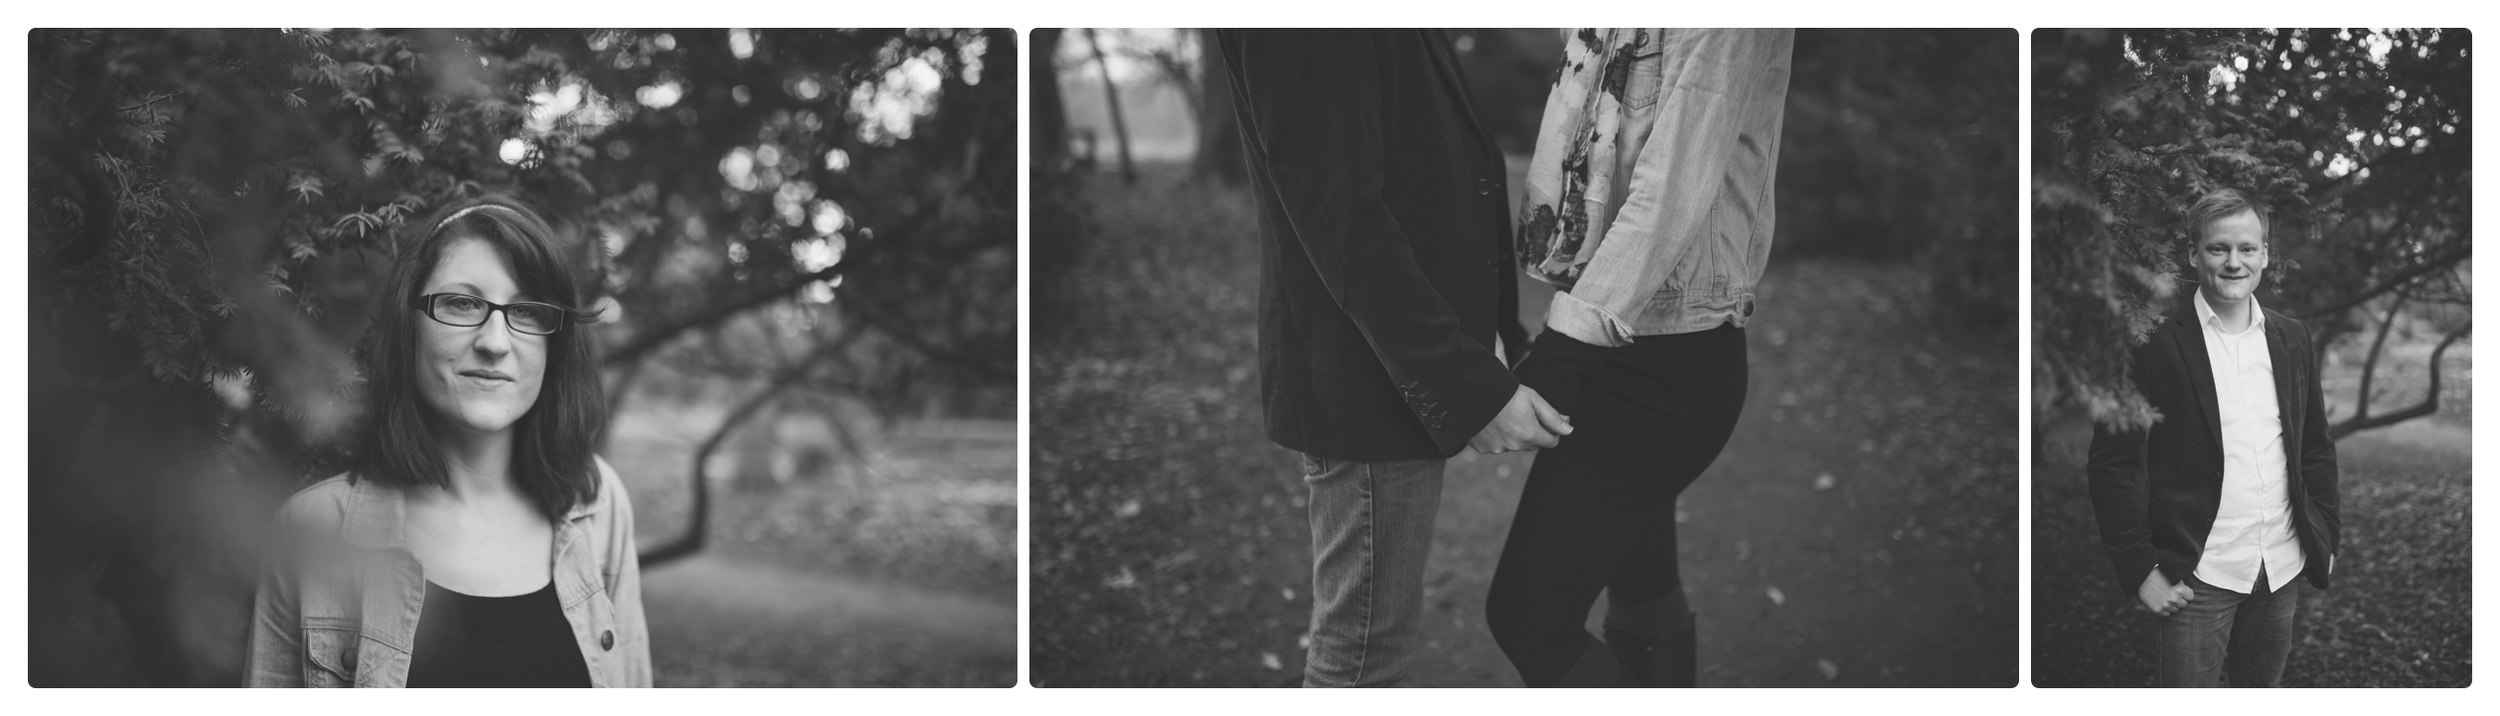 pre-wedding-northampton-photography